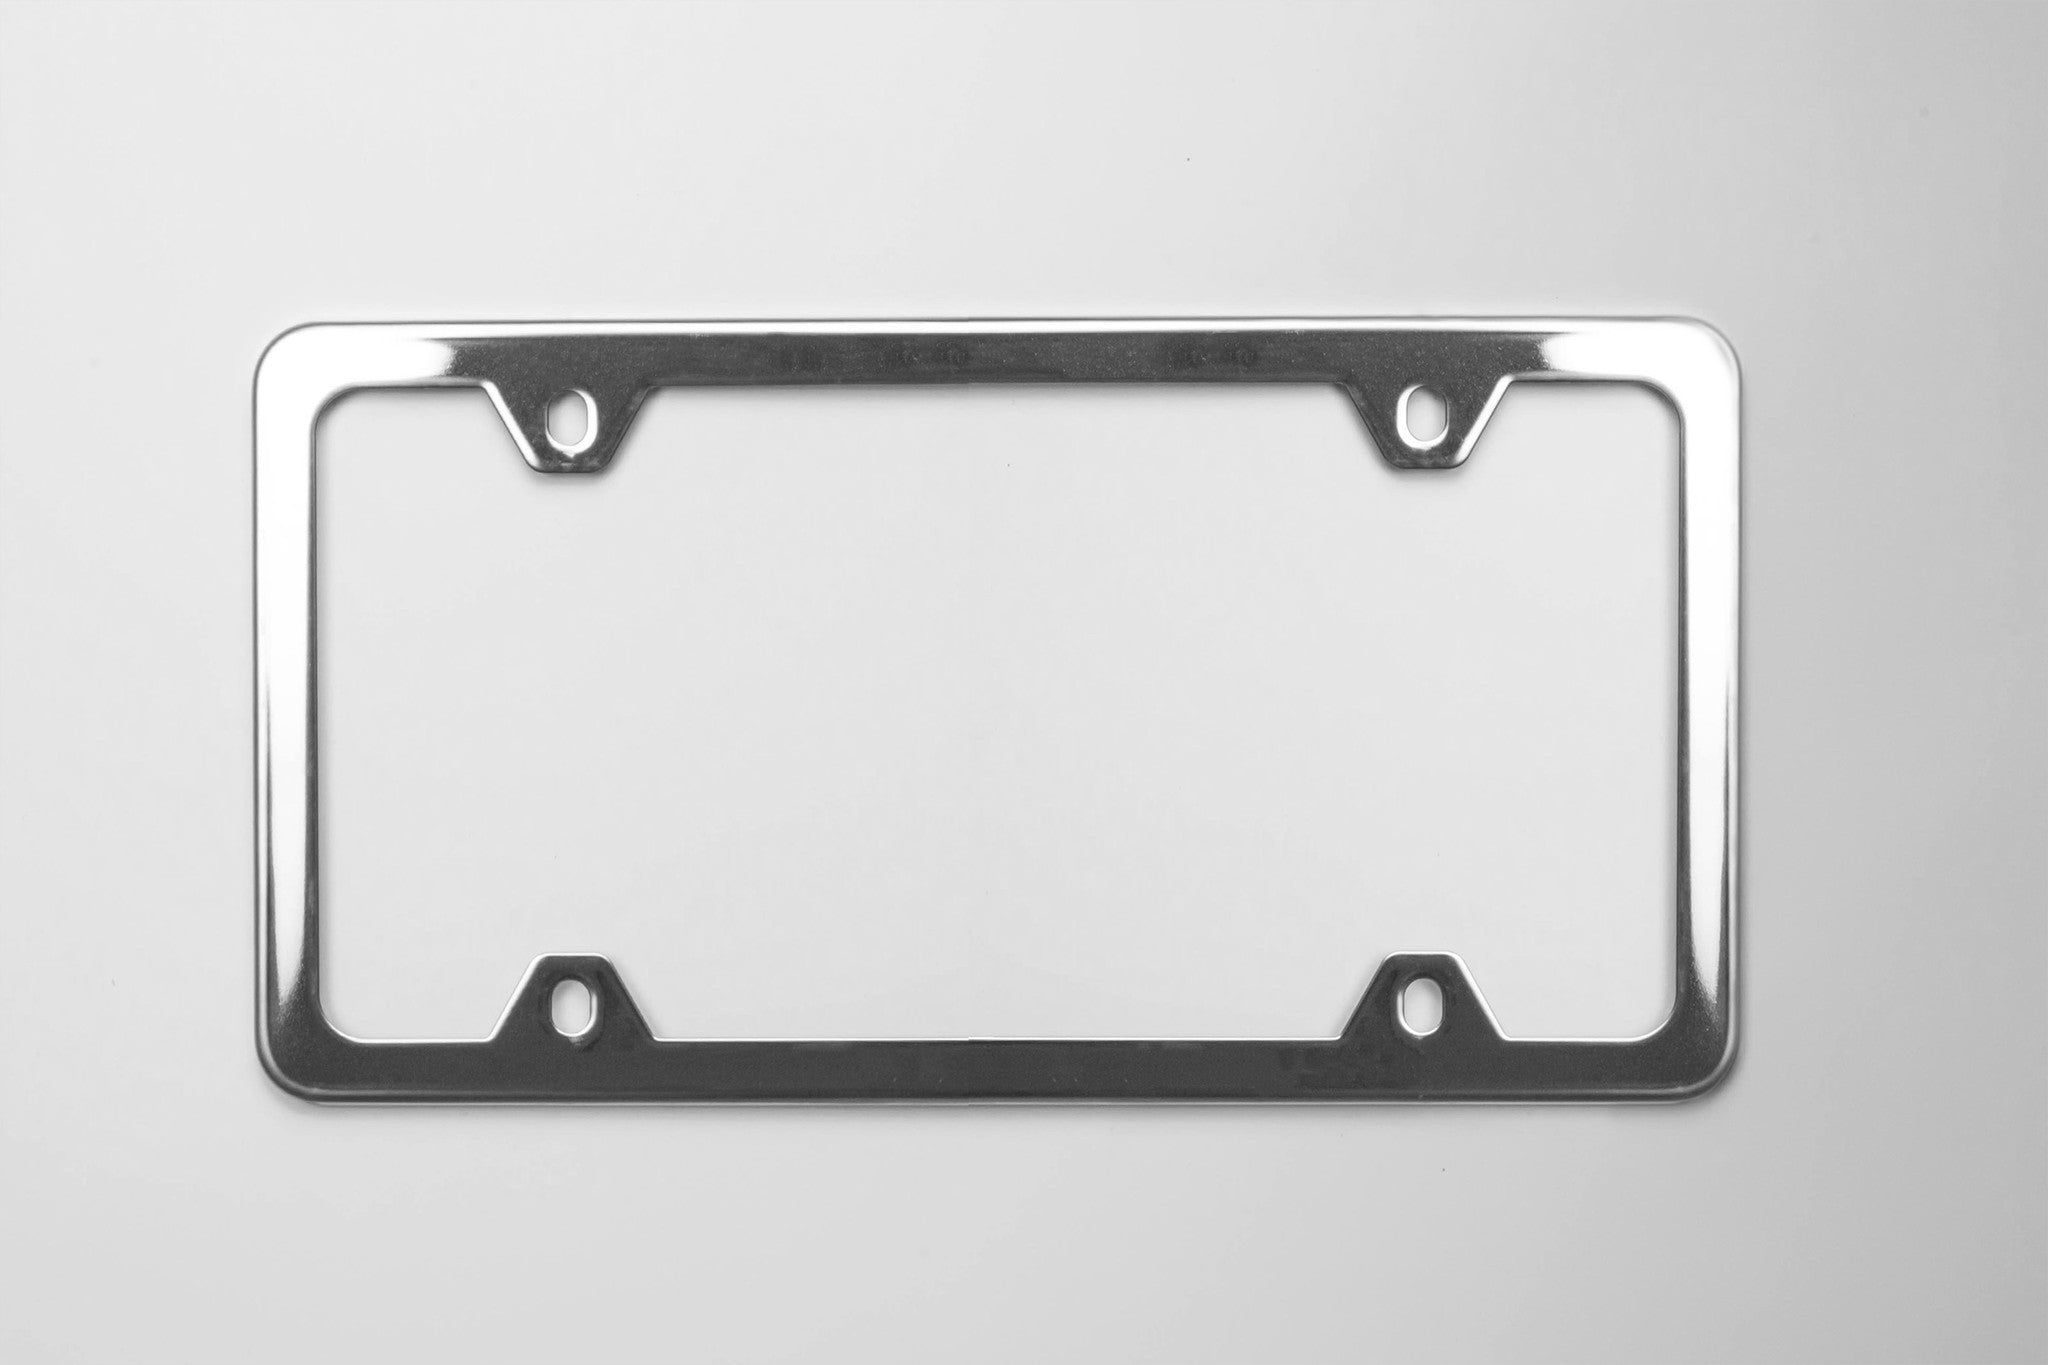 ultimate stainless steel license plate frame